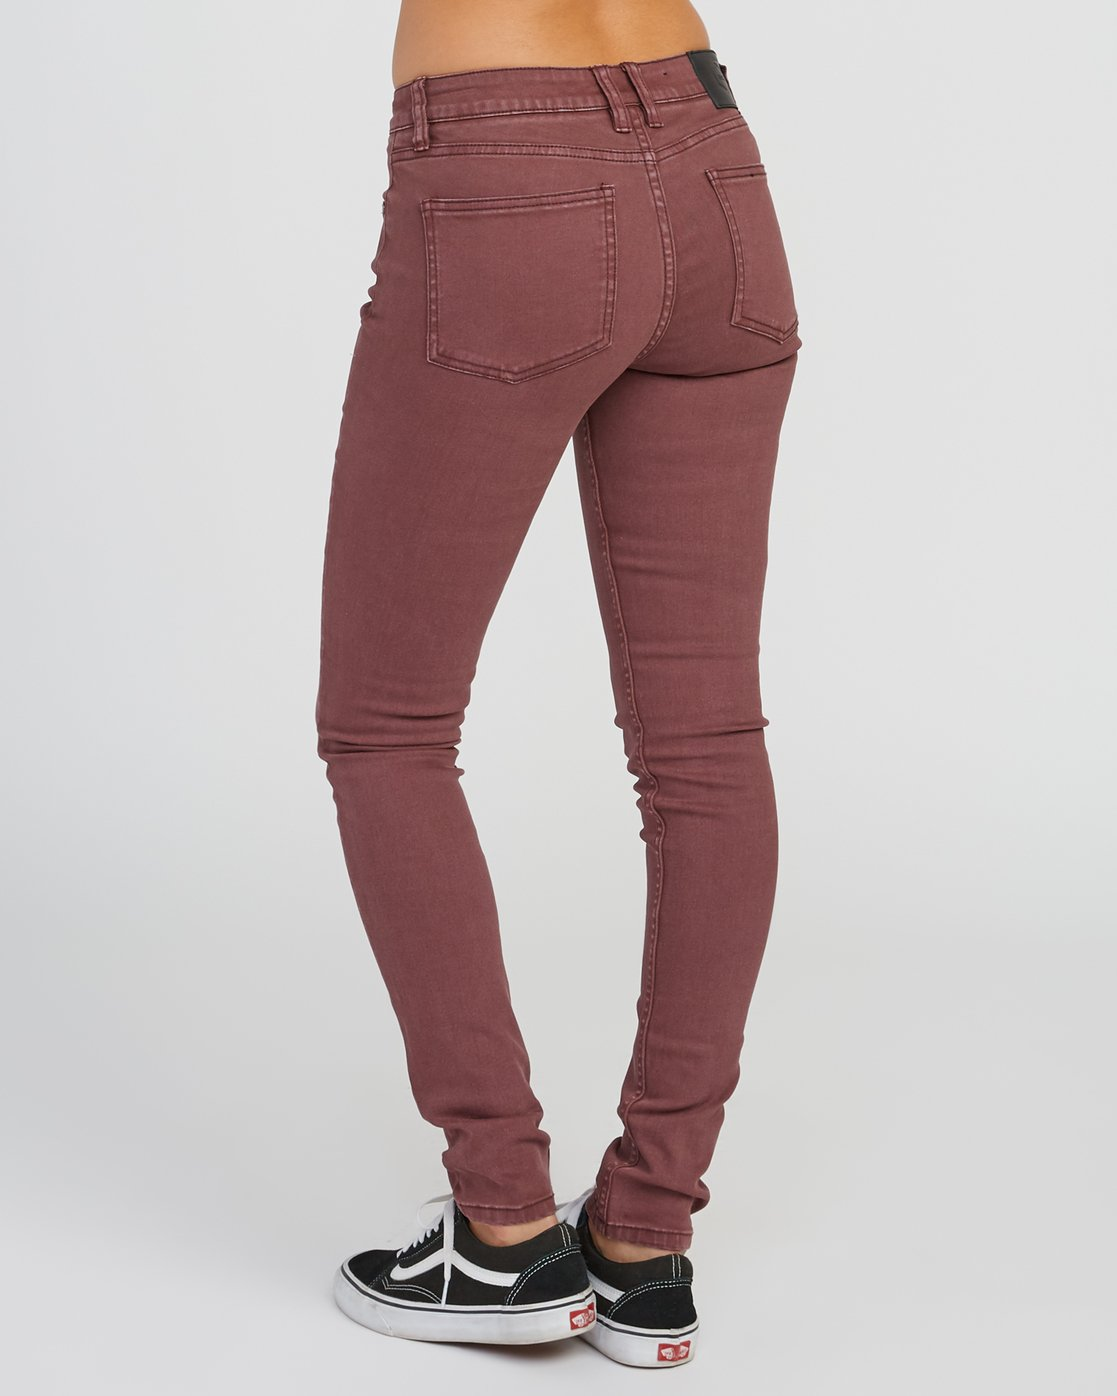 2 Dayley Mid Rise Denim Jeans Pink WCDP02DA RVCA